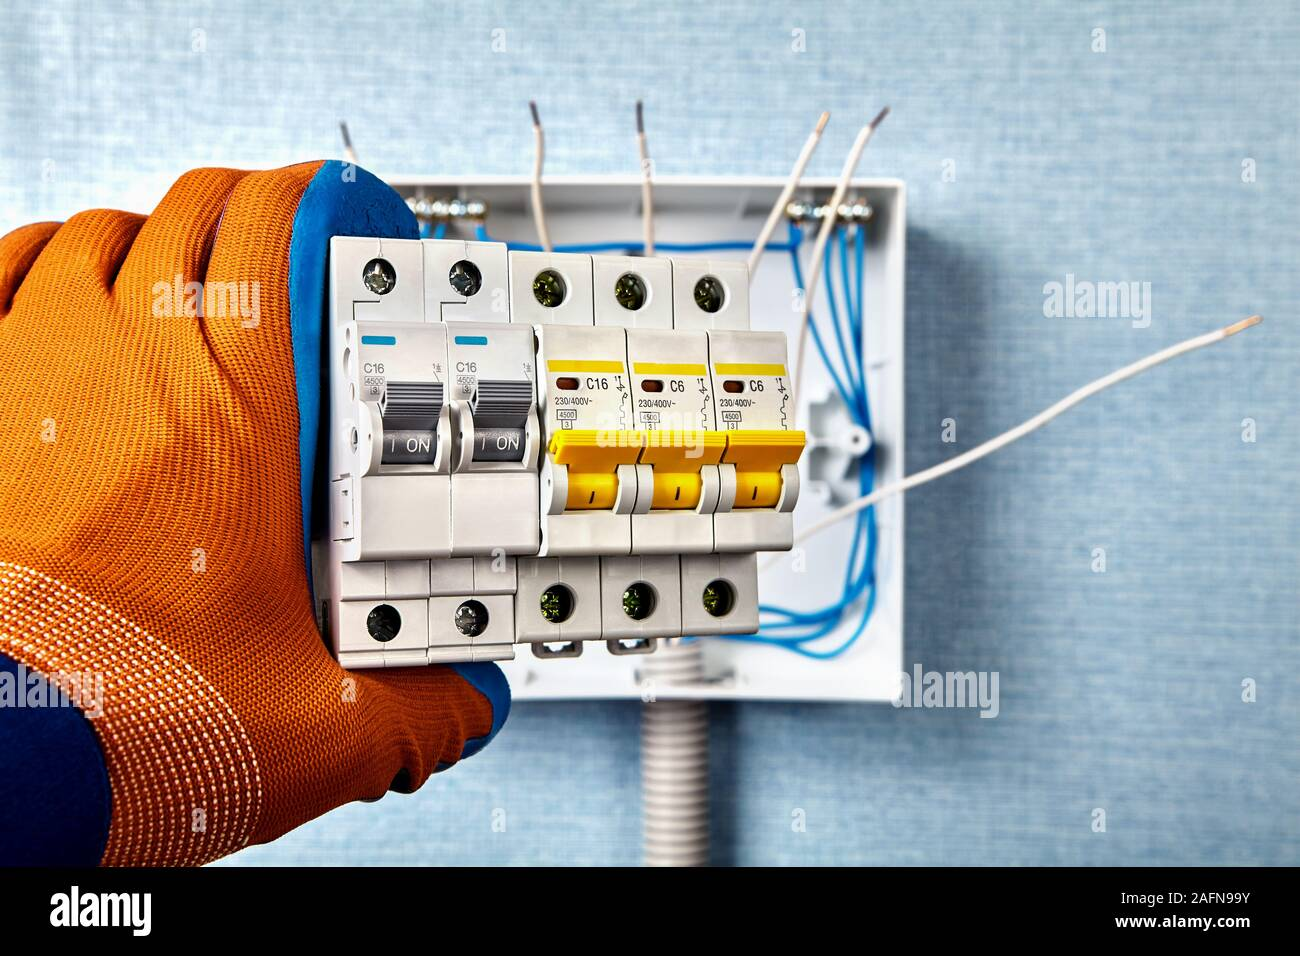 Residential Breaker Box High Resolution Stock Photography And Images Alamy